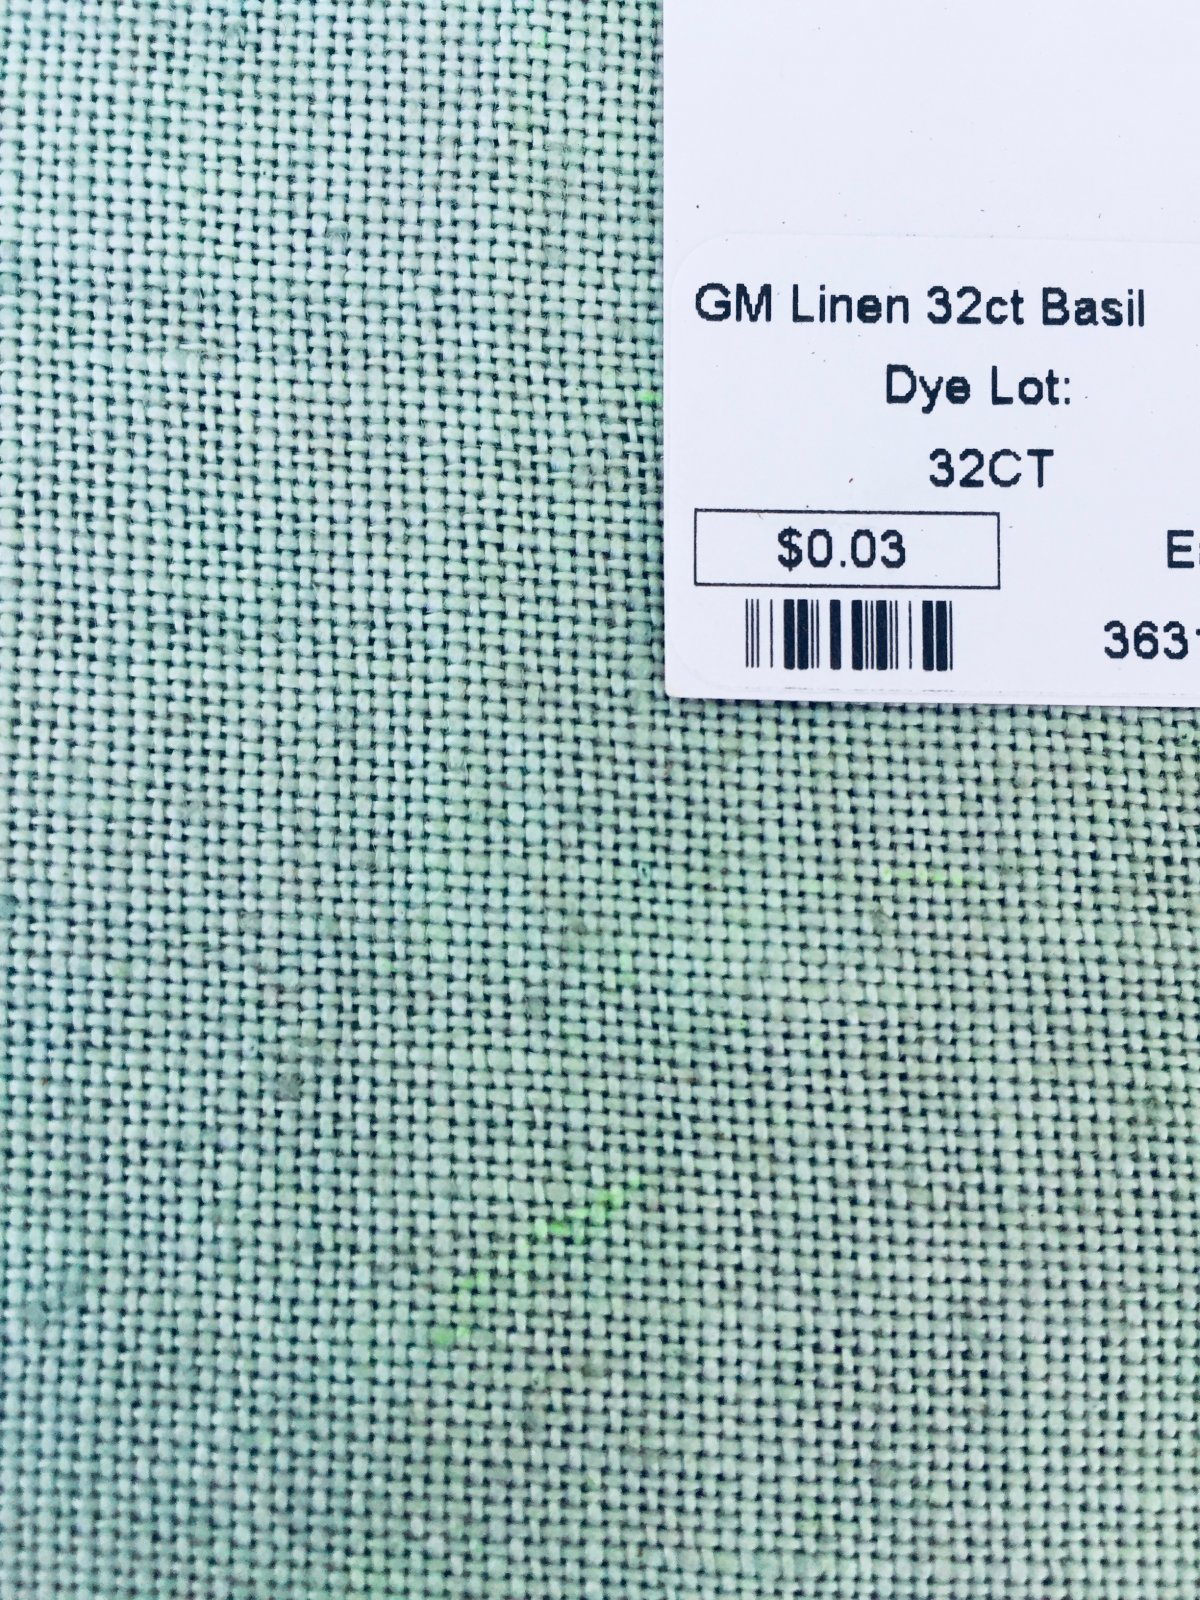 GM Linen 32ct Basil